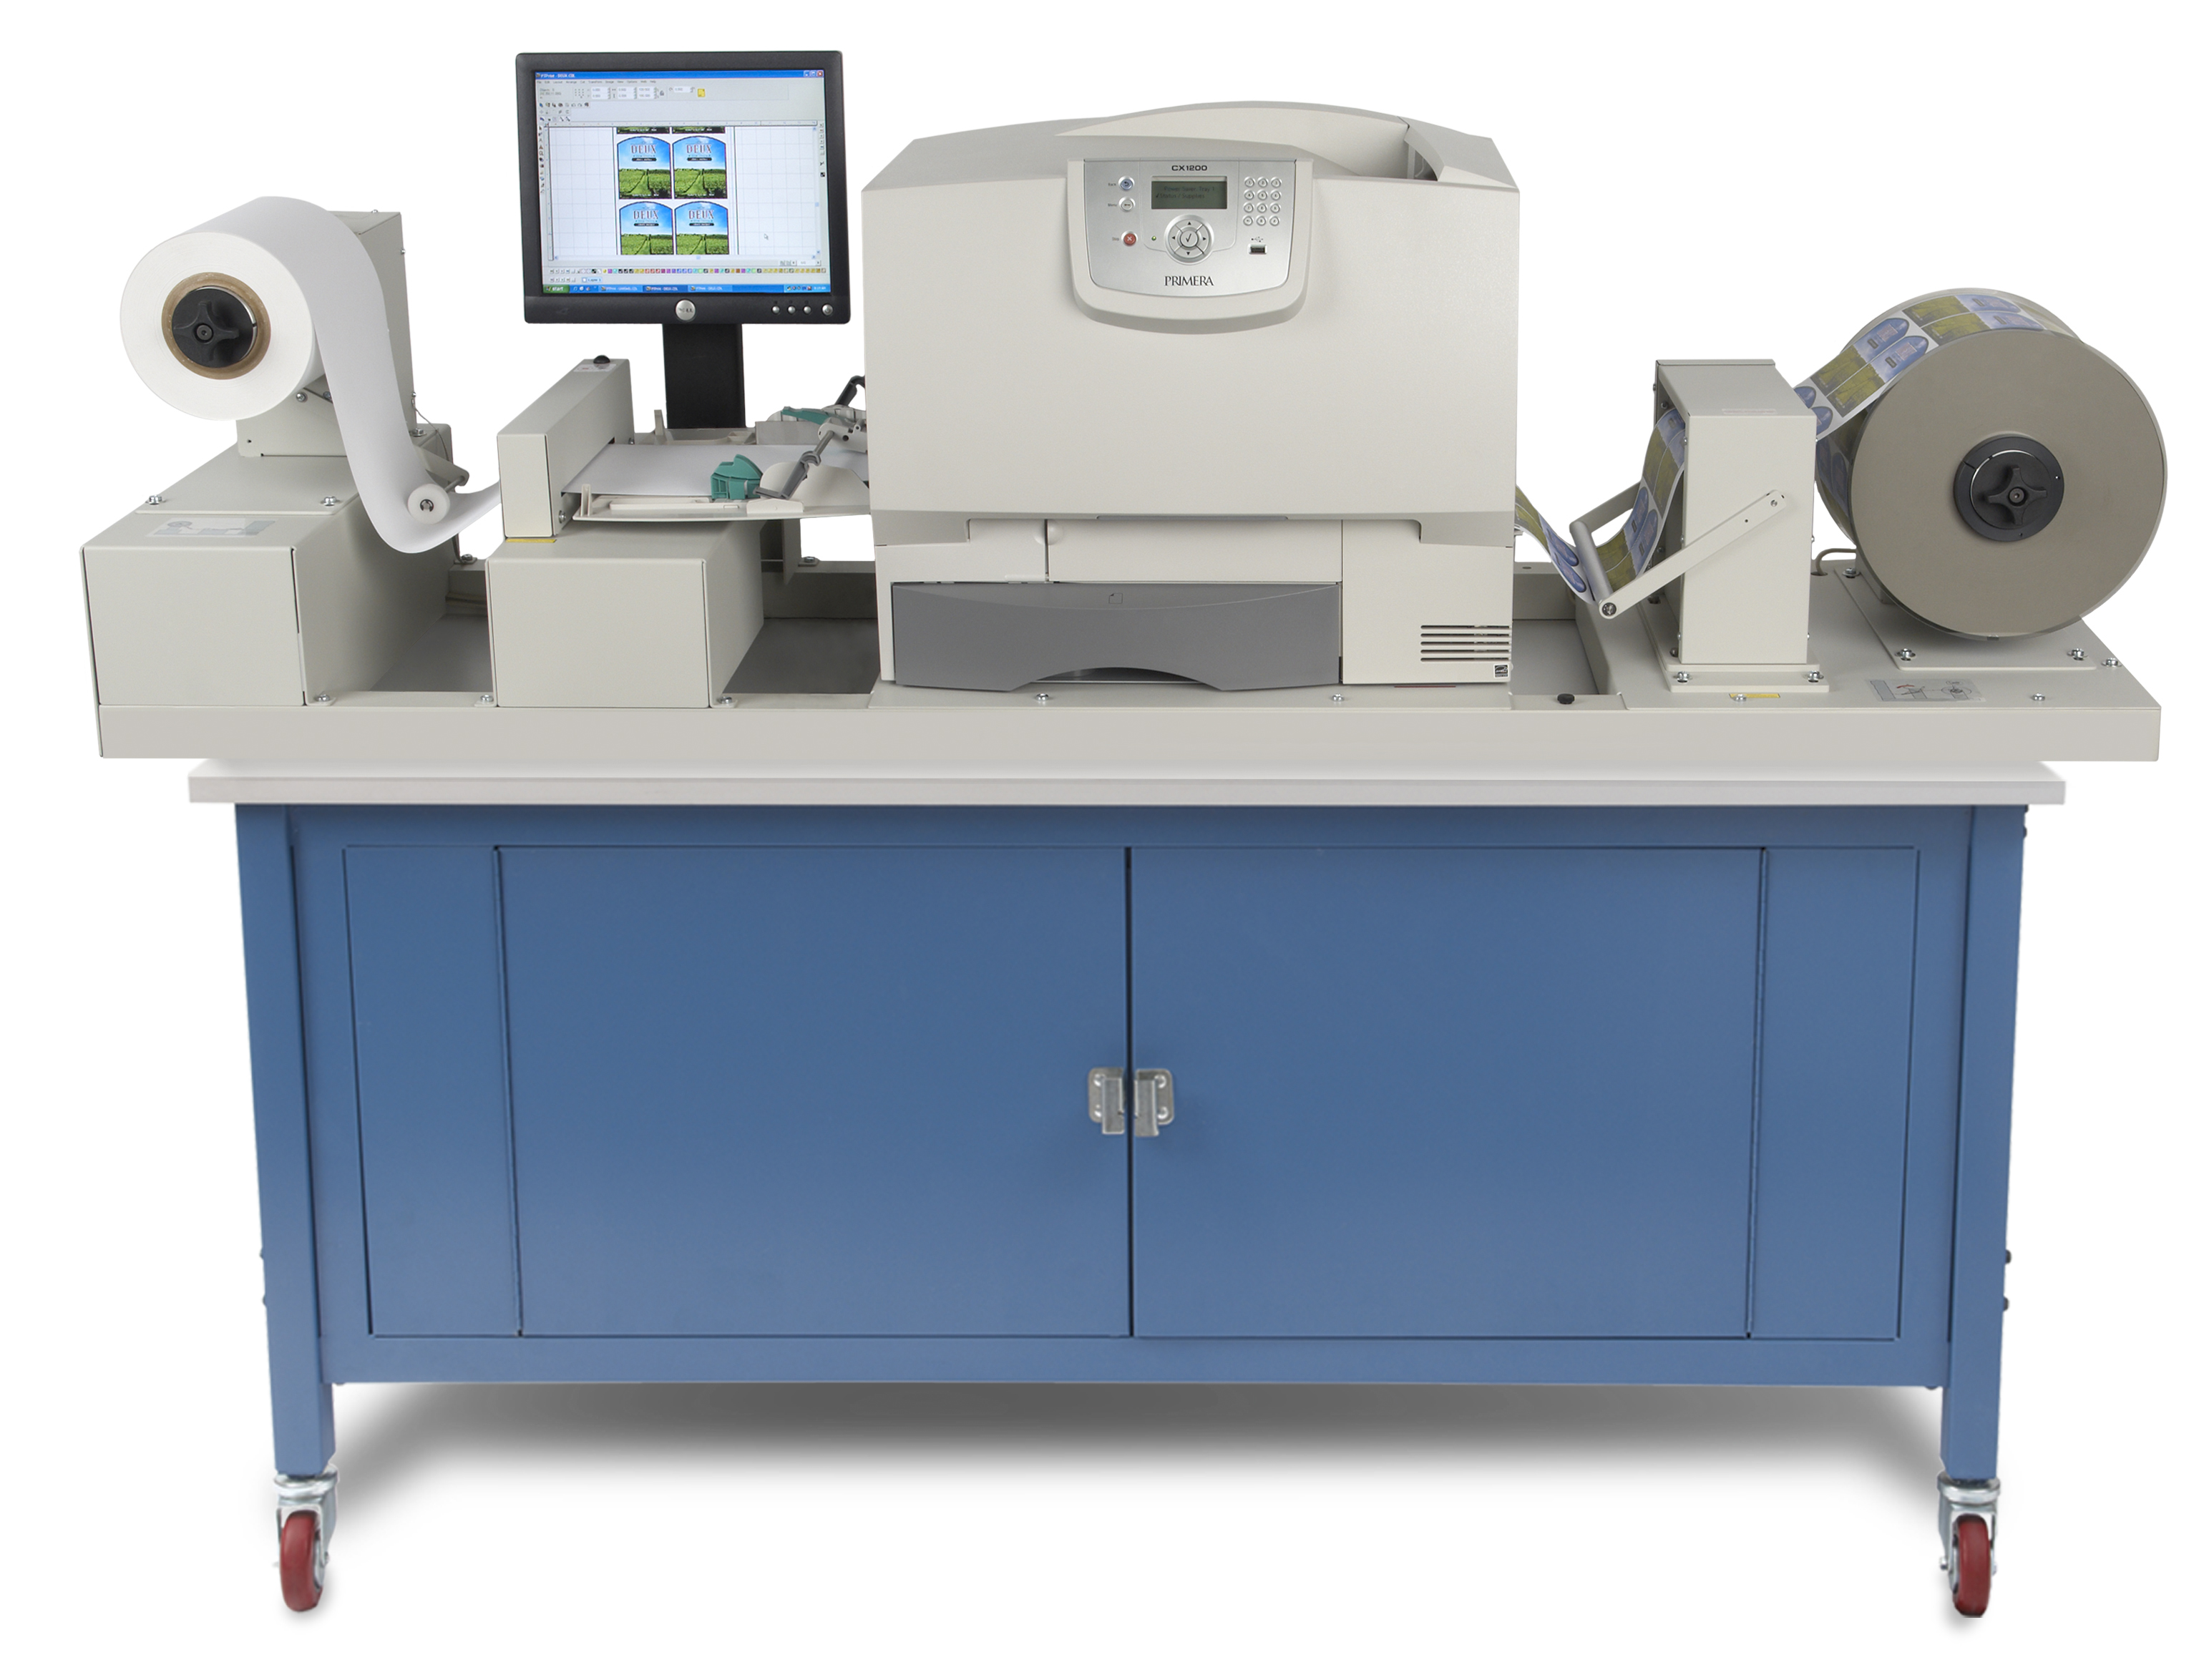 Lease your Primera CX1200 color label press from DurafastLabel.com